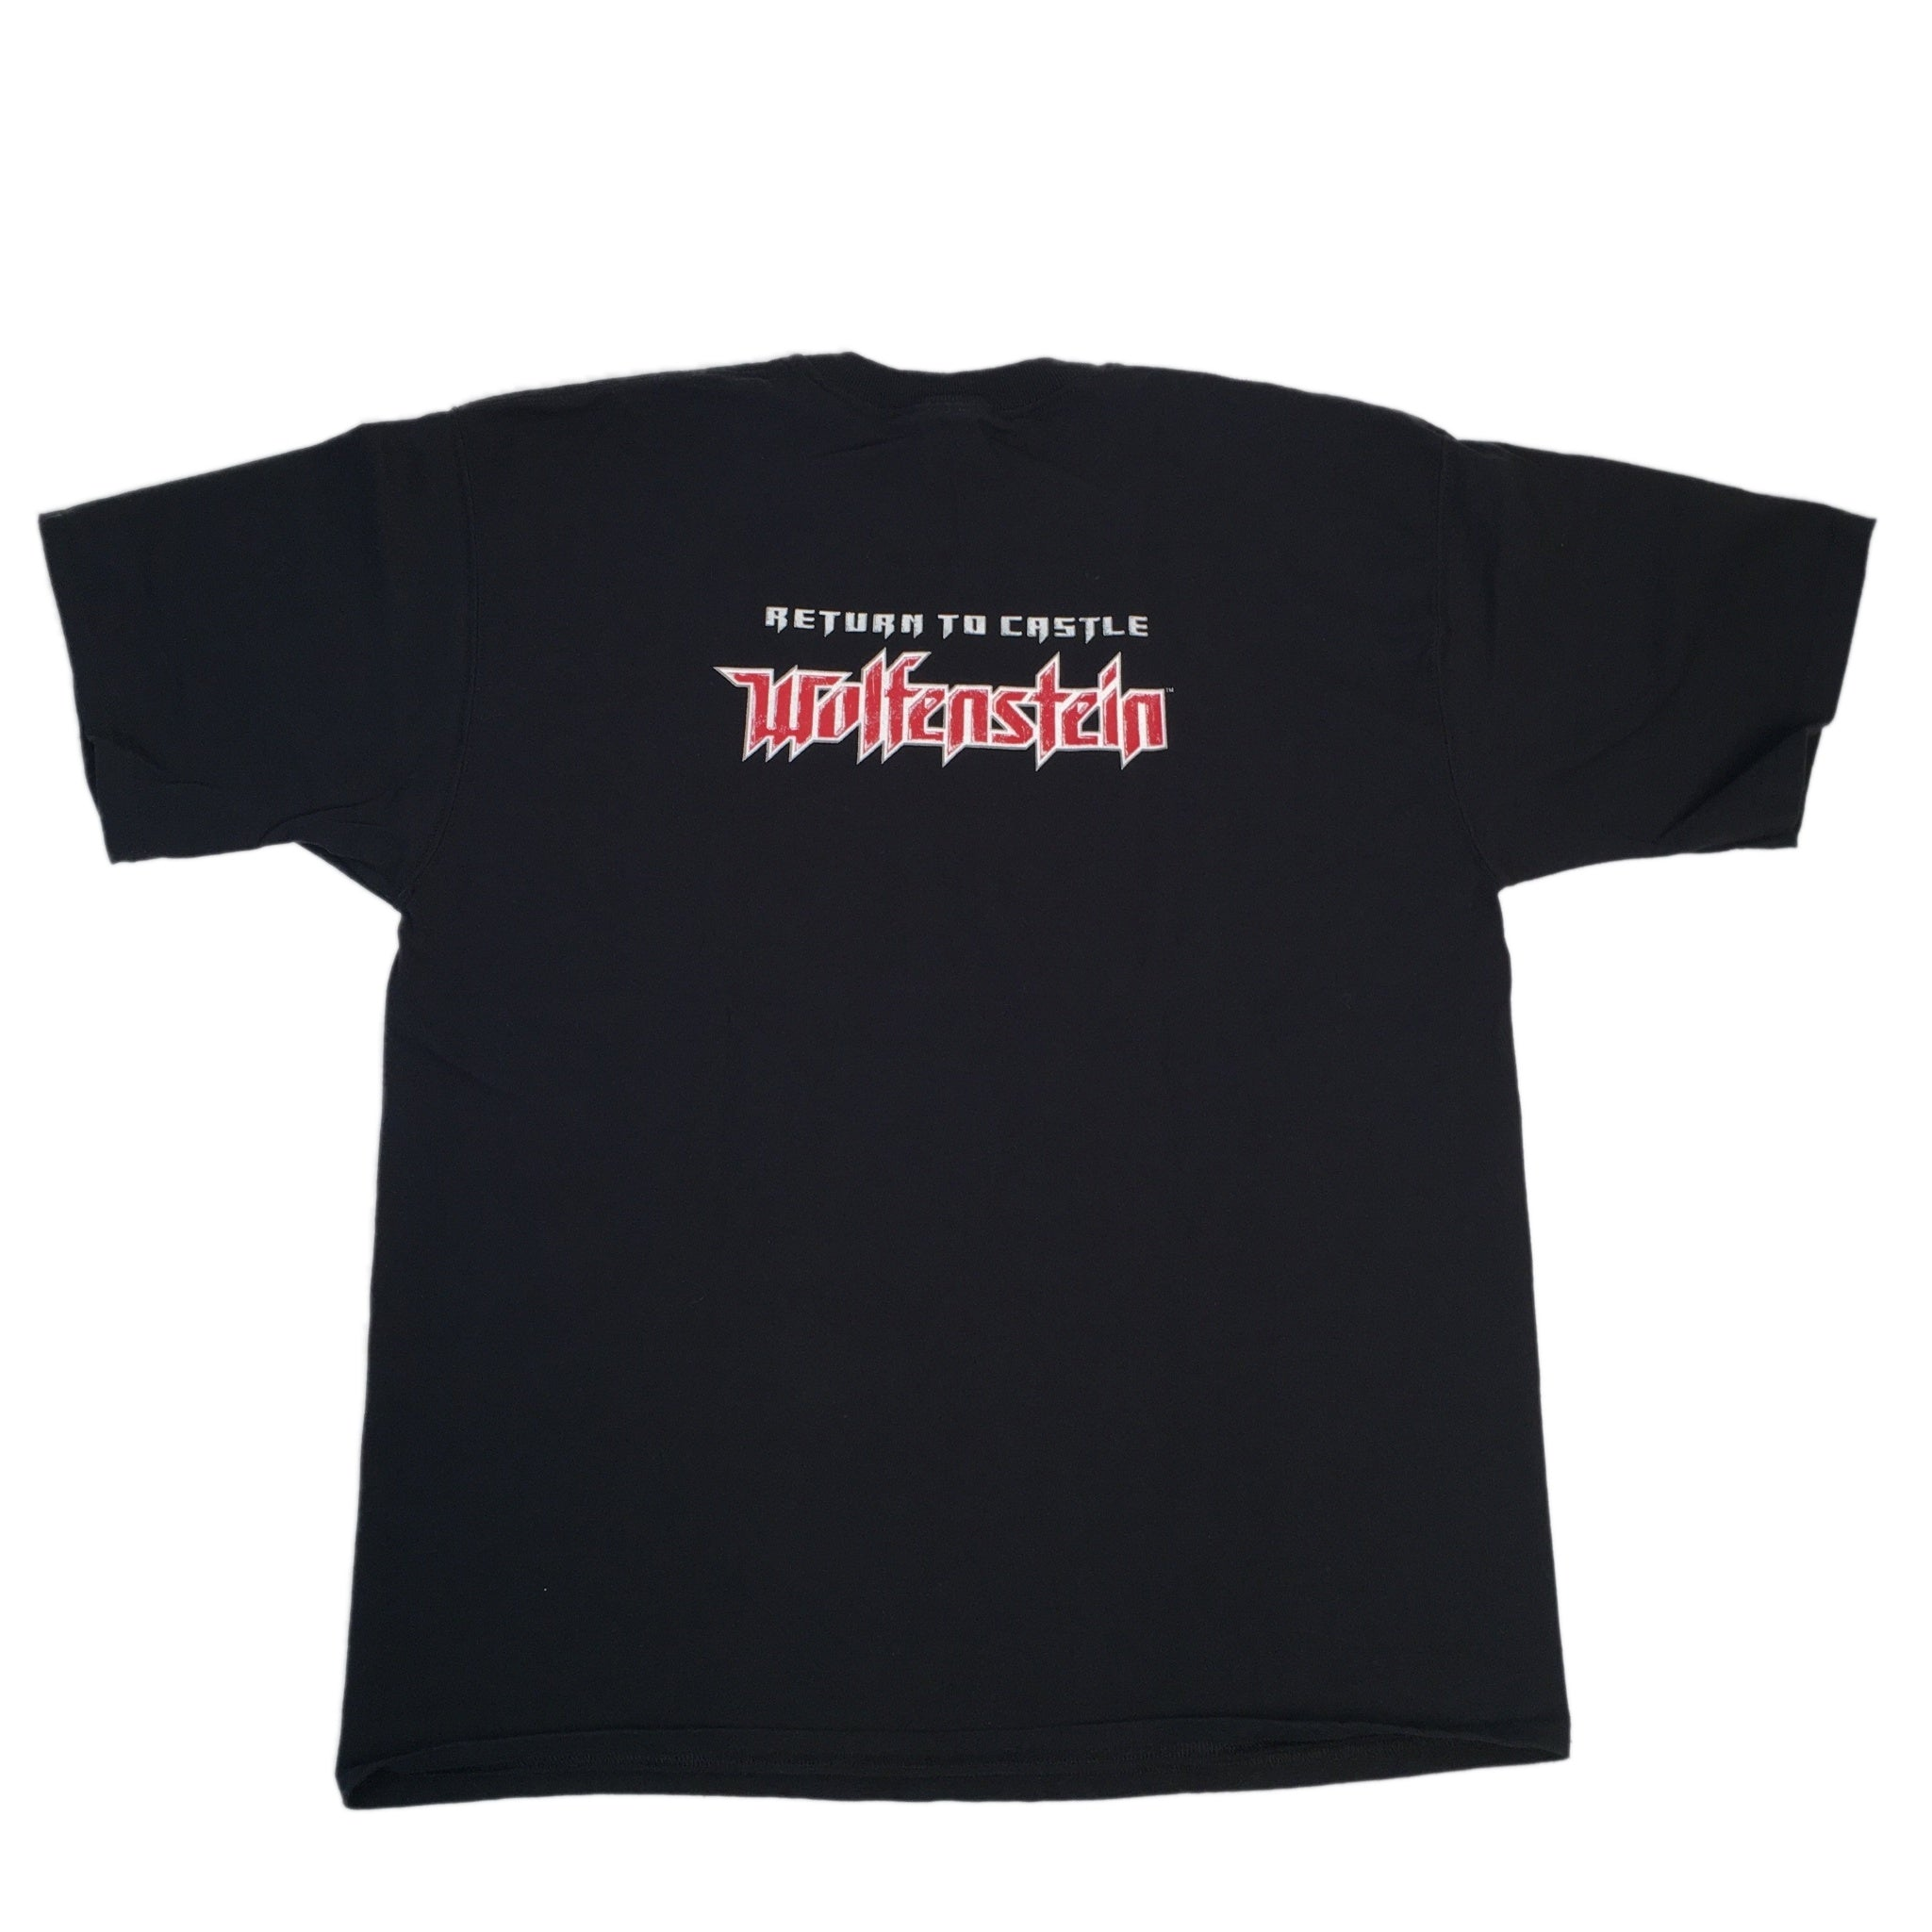 "Vintage Wolfenstein ""Return To Castle Wolfenstein"" T-Shirt"